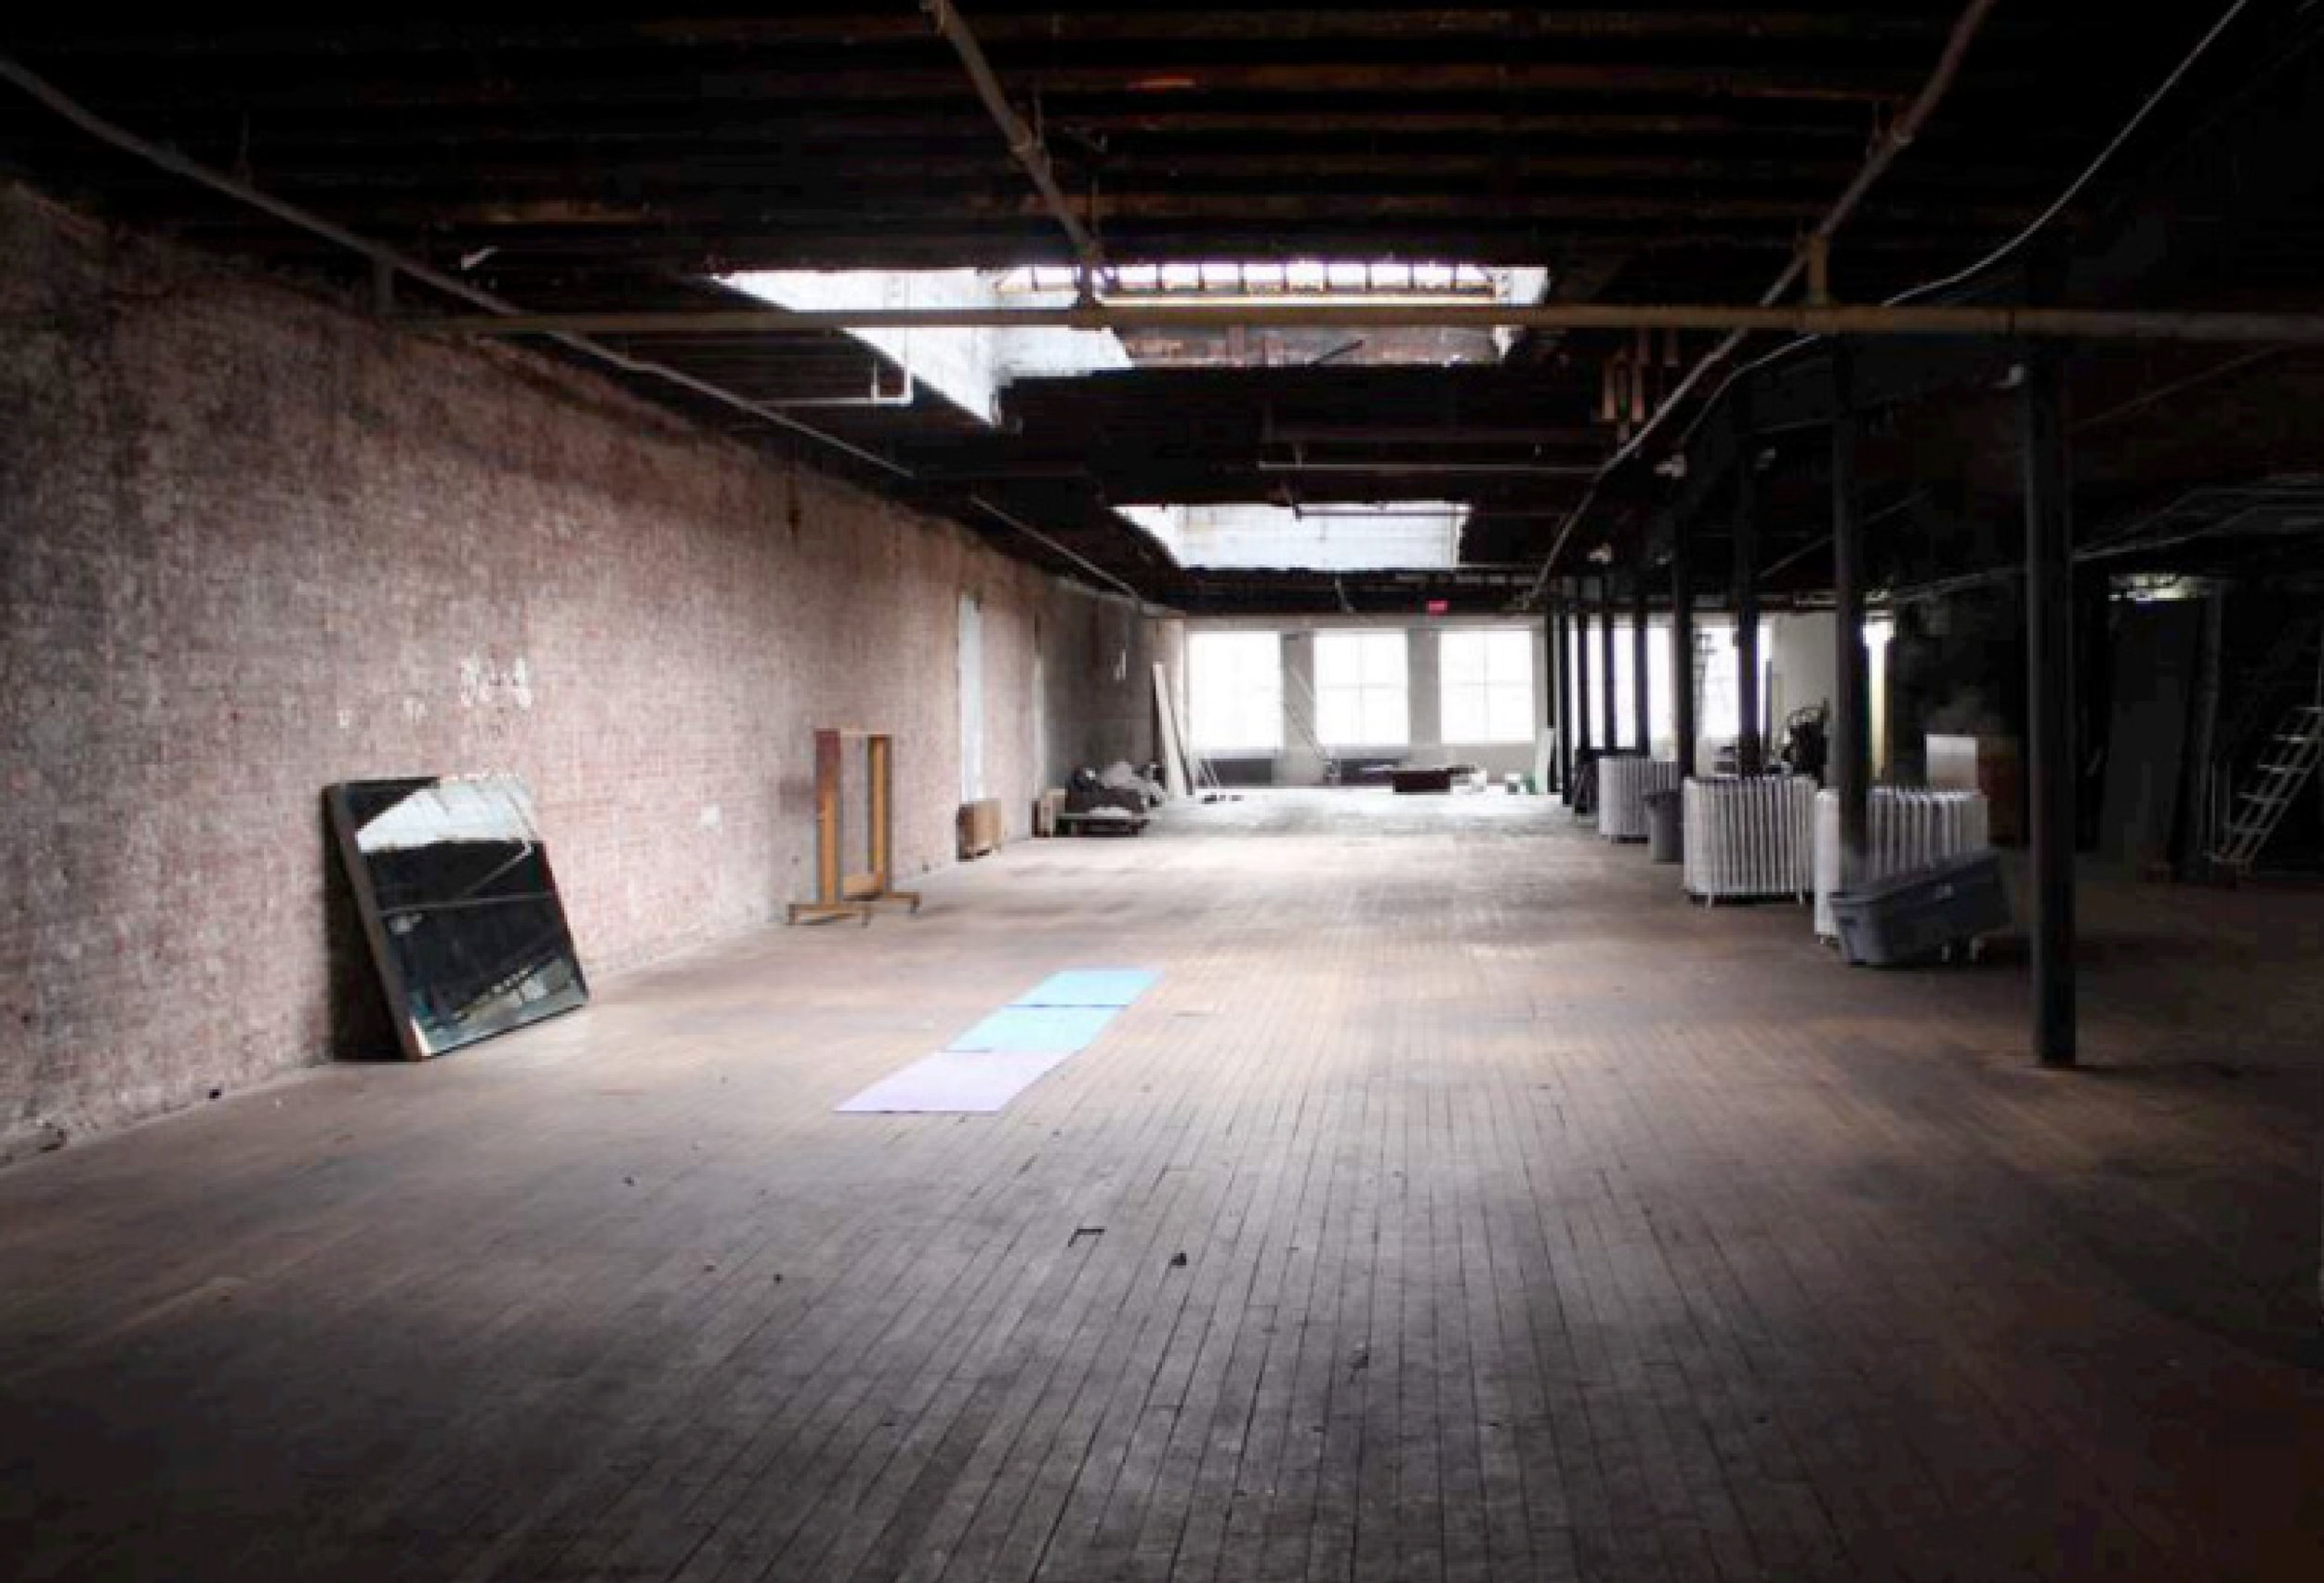 The empty loft space in SoHo, NYC for the presentation.